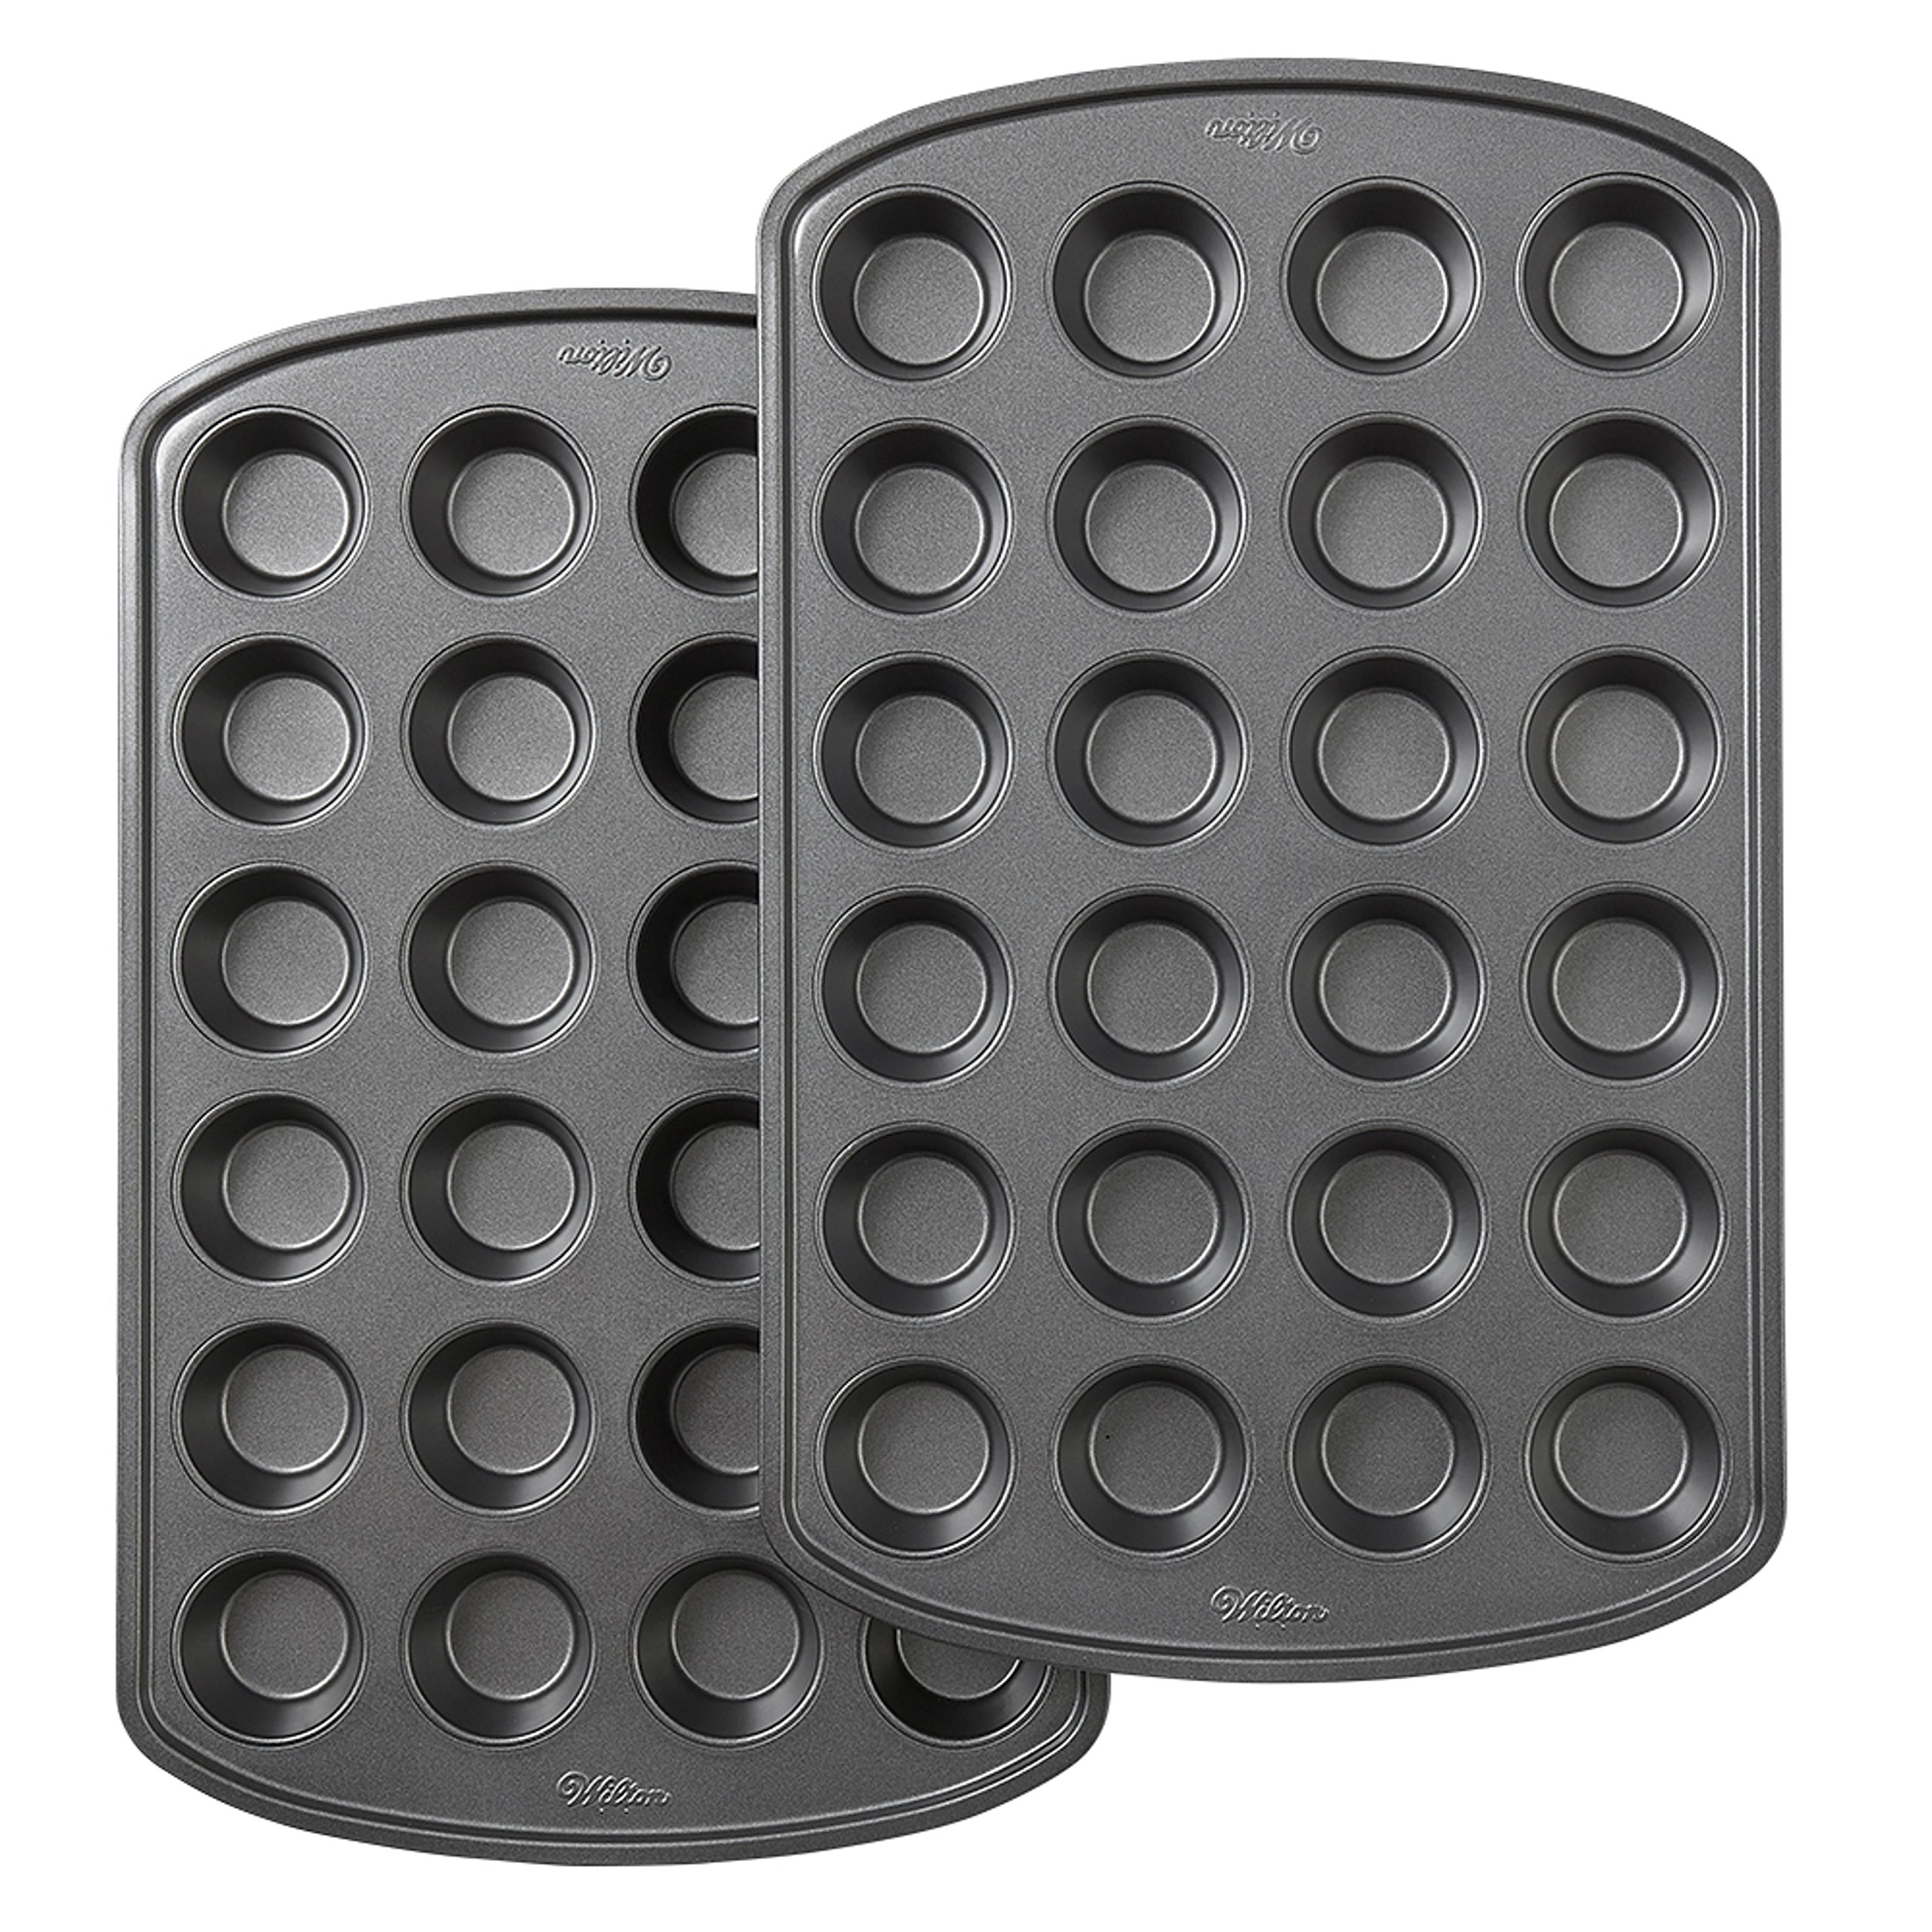 Wilton Perfect Results Premium Non-Stick Bakeware 24-Cup Mini Muffin Pan, Multipack of 2